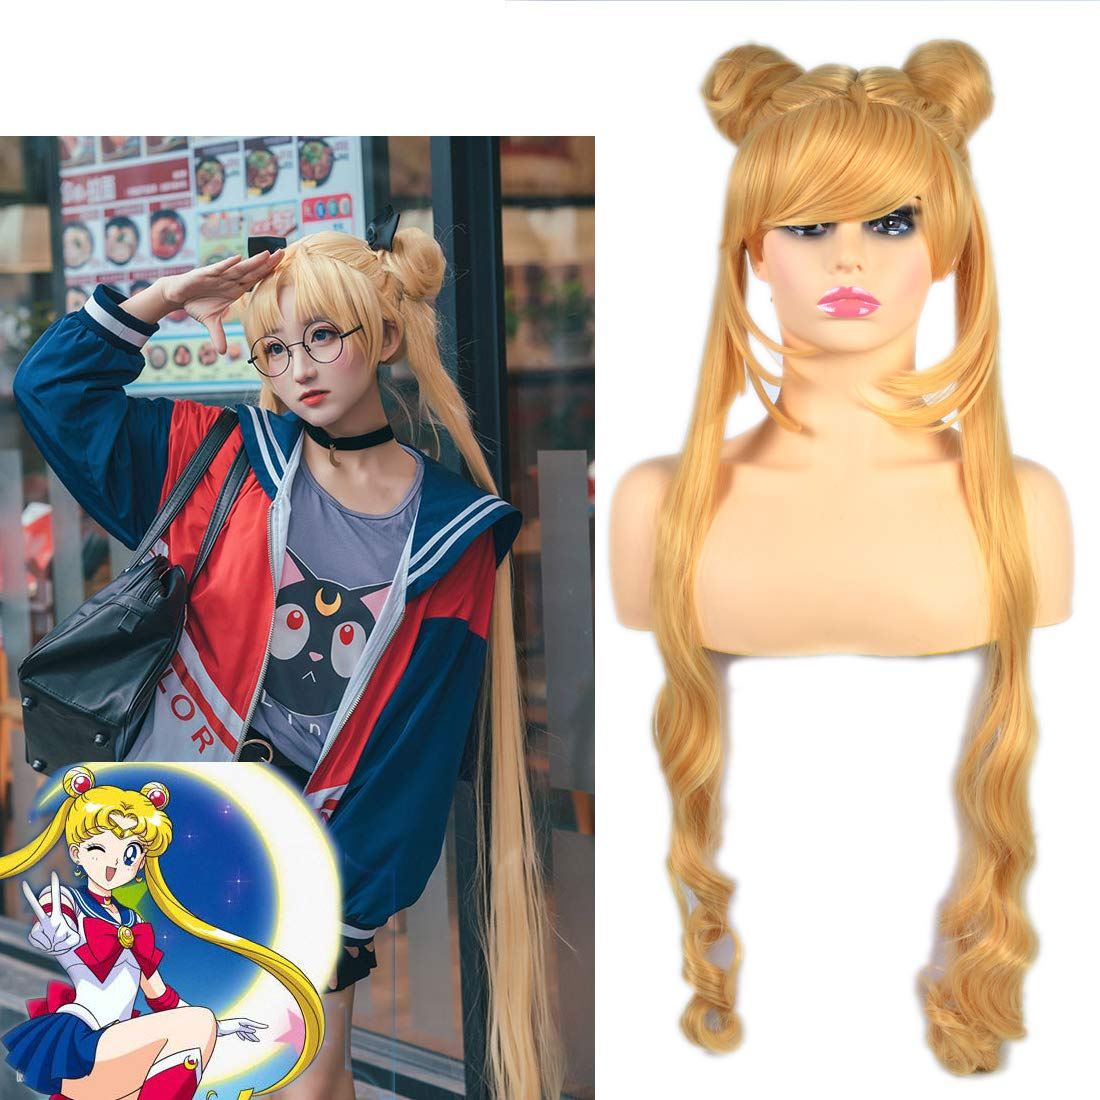 Hoolaza Blonde Extra Long Curly Wig Tsukino Usagi Sailor Moon Princess Serenity For Halloween Party Cosplay Wigs Amazon De Beauty